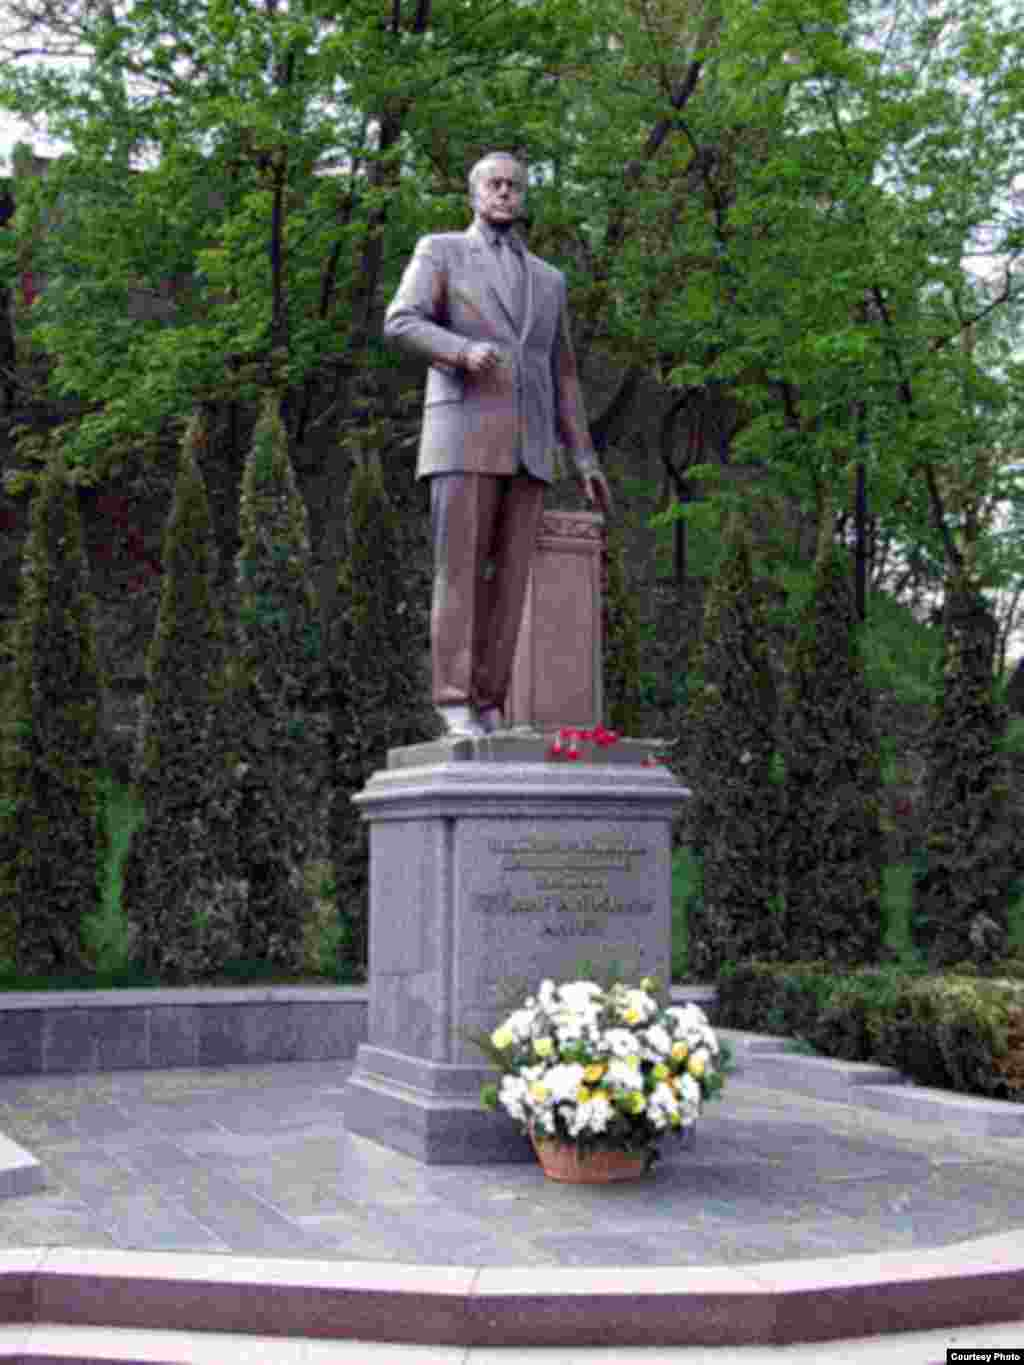 A statue of Heydar Aliyev was unveiled in Kyiv, Ukraine, on June 4, 2004.